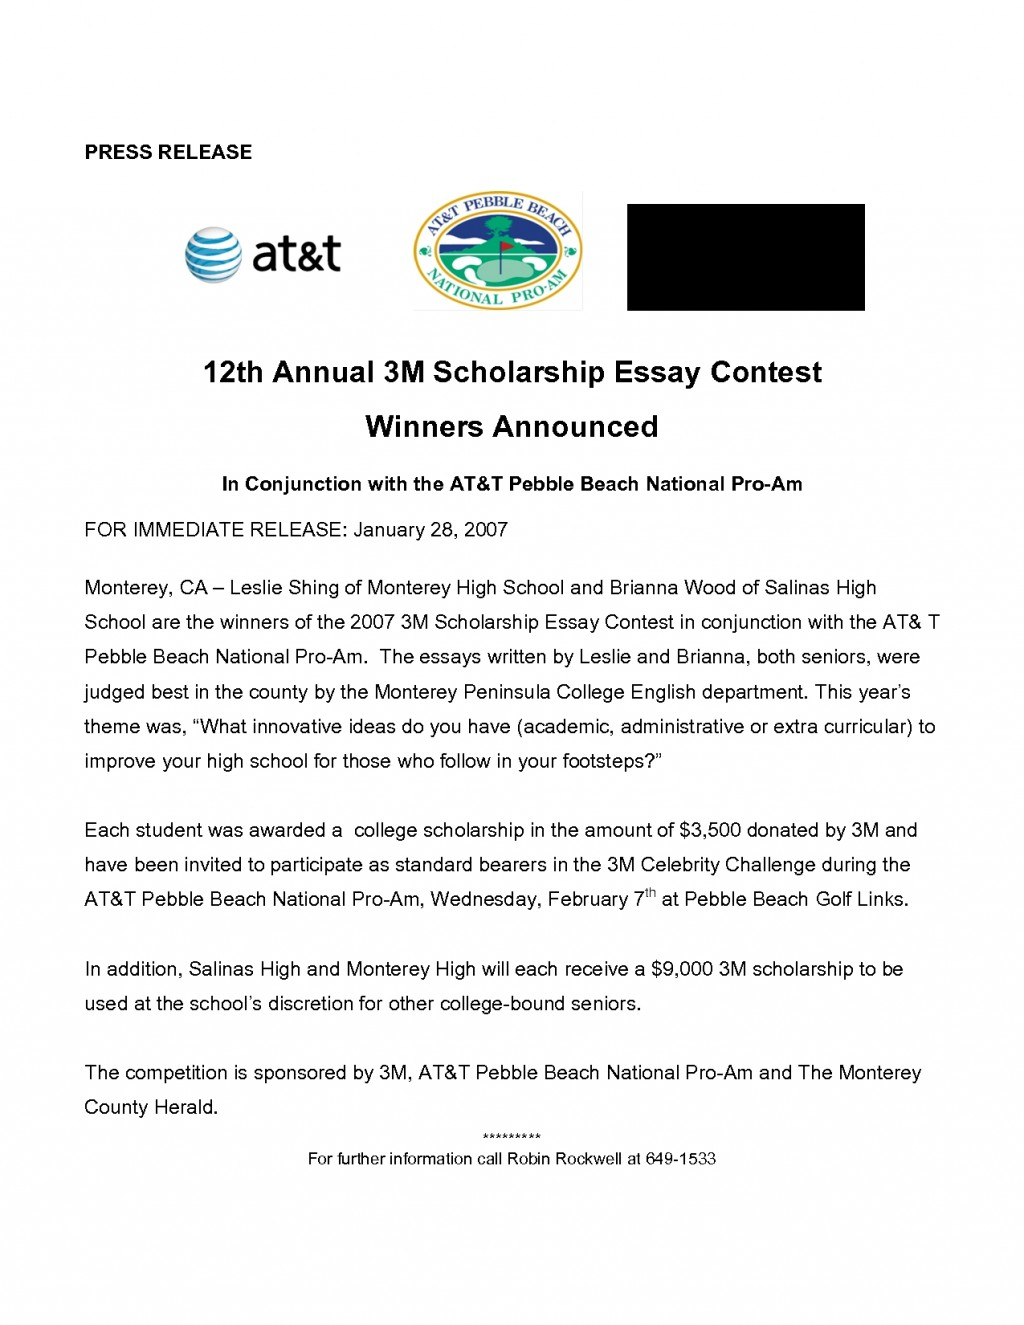 008 Scholarship Essay Contest High School Student Resume Template No Experience Luxury Assignment College Contests Application Help Wi Fountainhead Students Galorath Zzl Astounding For 2019 Middle Large